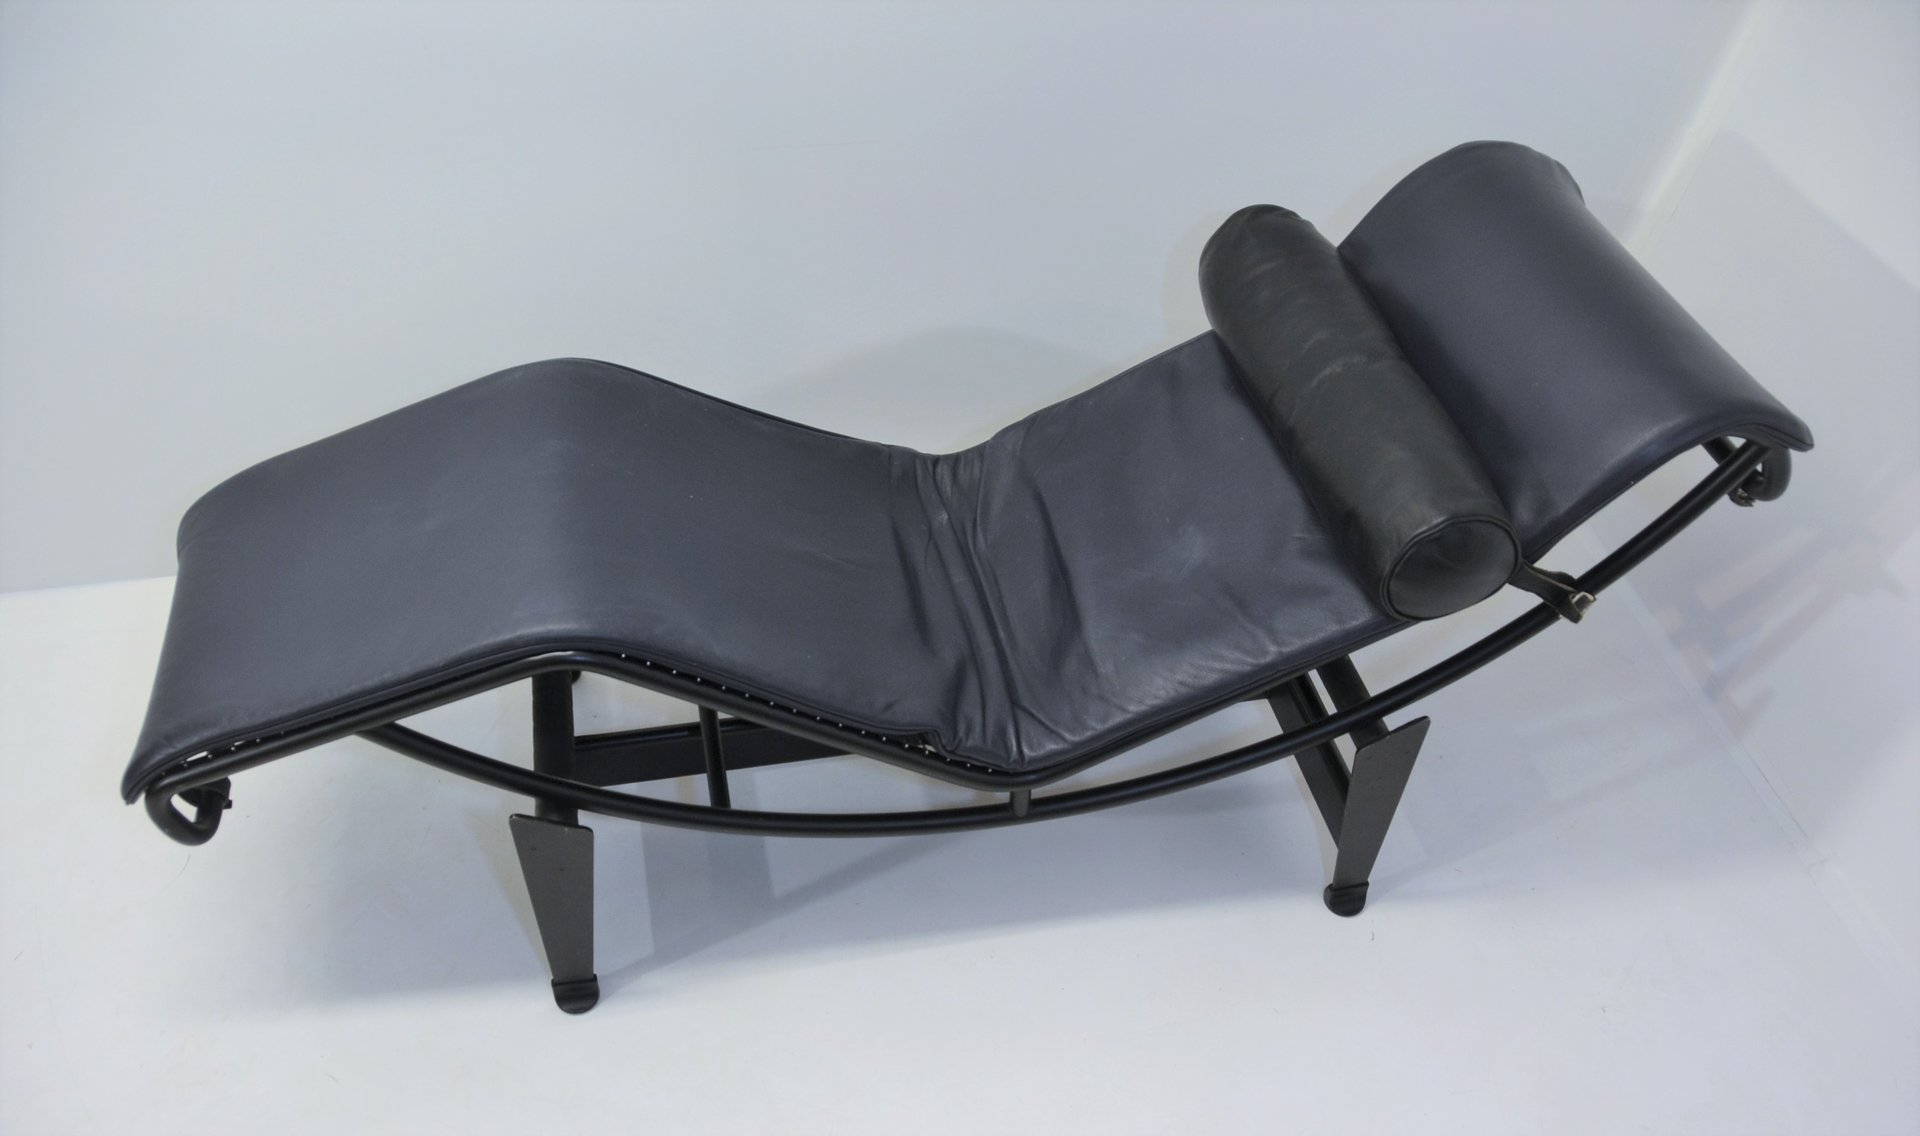 Vintage lc4 chaise lounge by le corbusier pierre - Chaise le corbusier prix ...